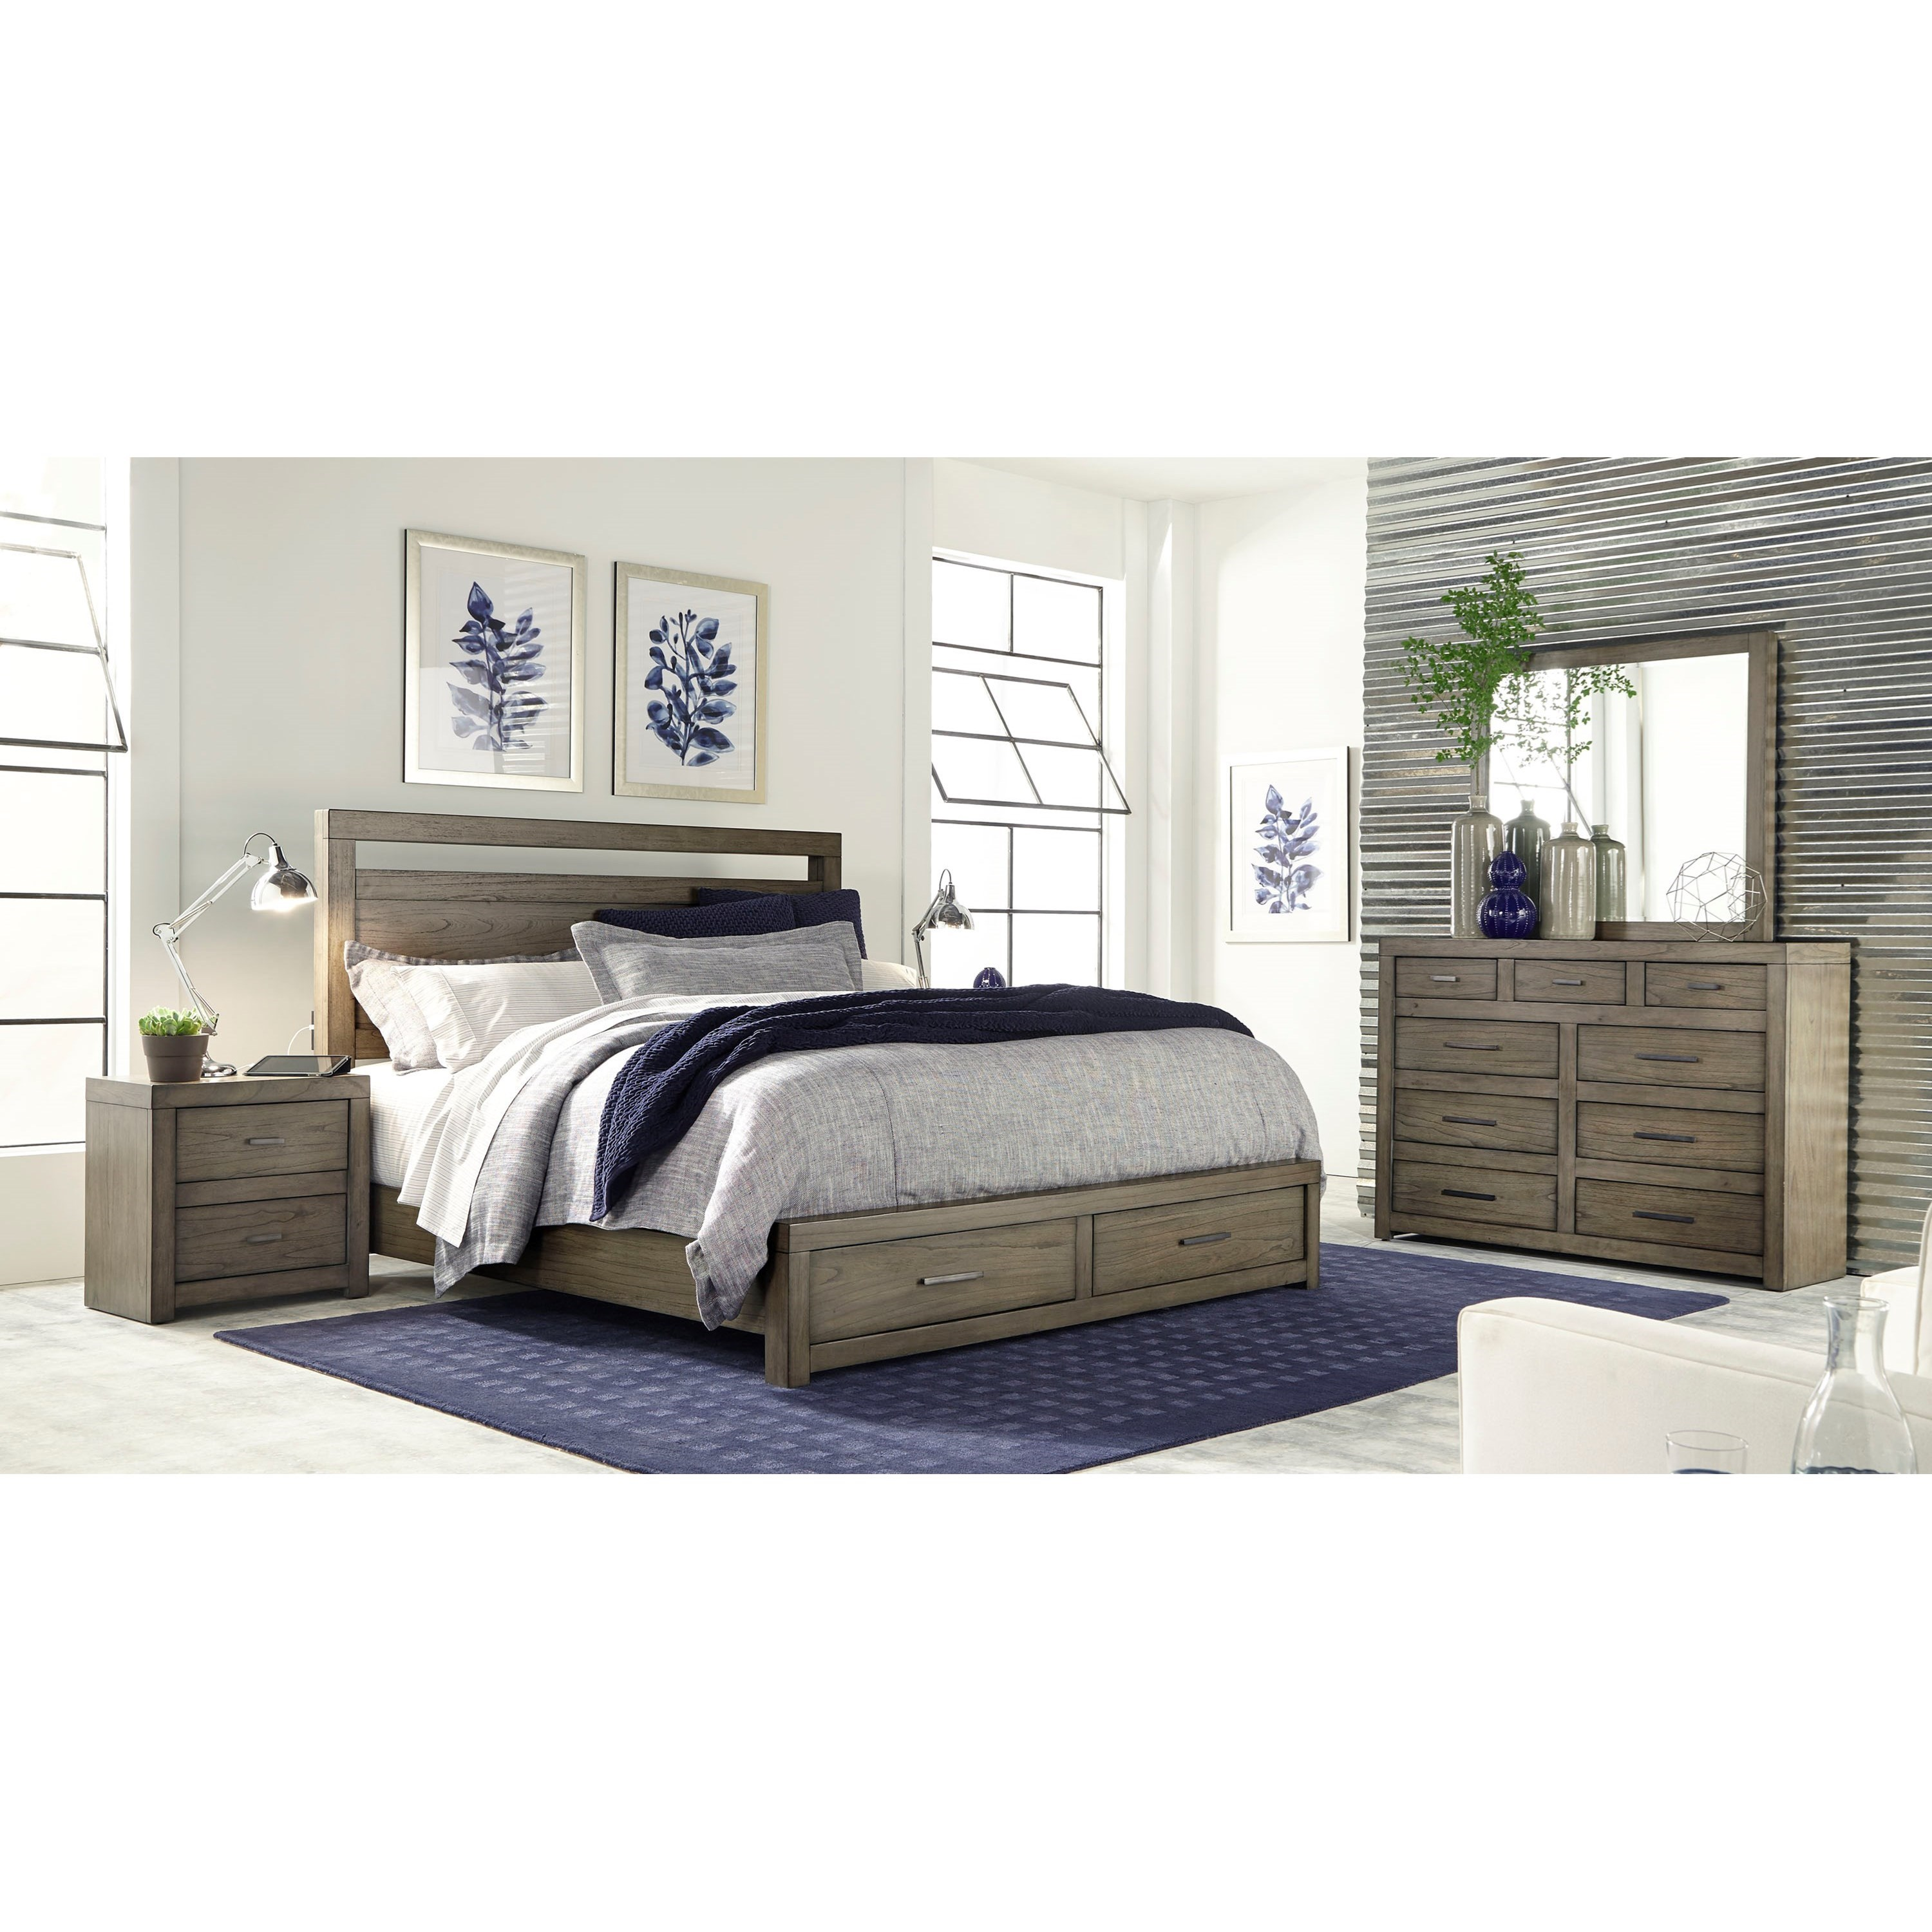 Aspenhome Modern Loft King Bedroom Group - Item Number: IML-GRY K Bedroom Group 1